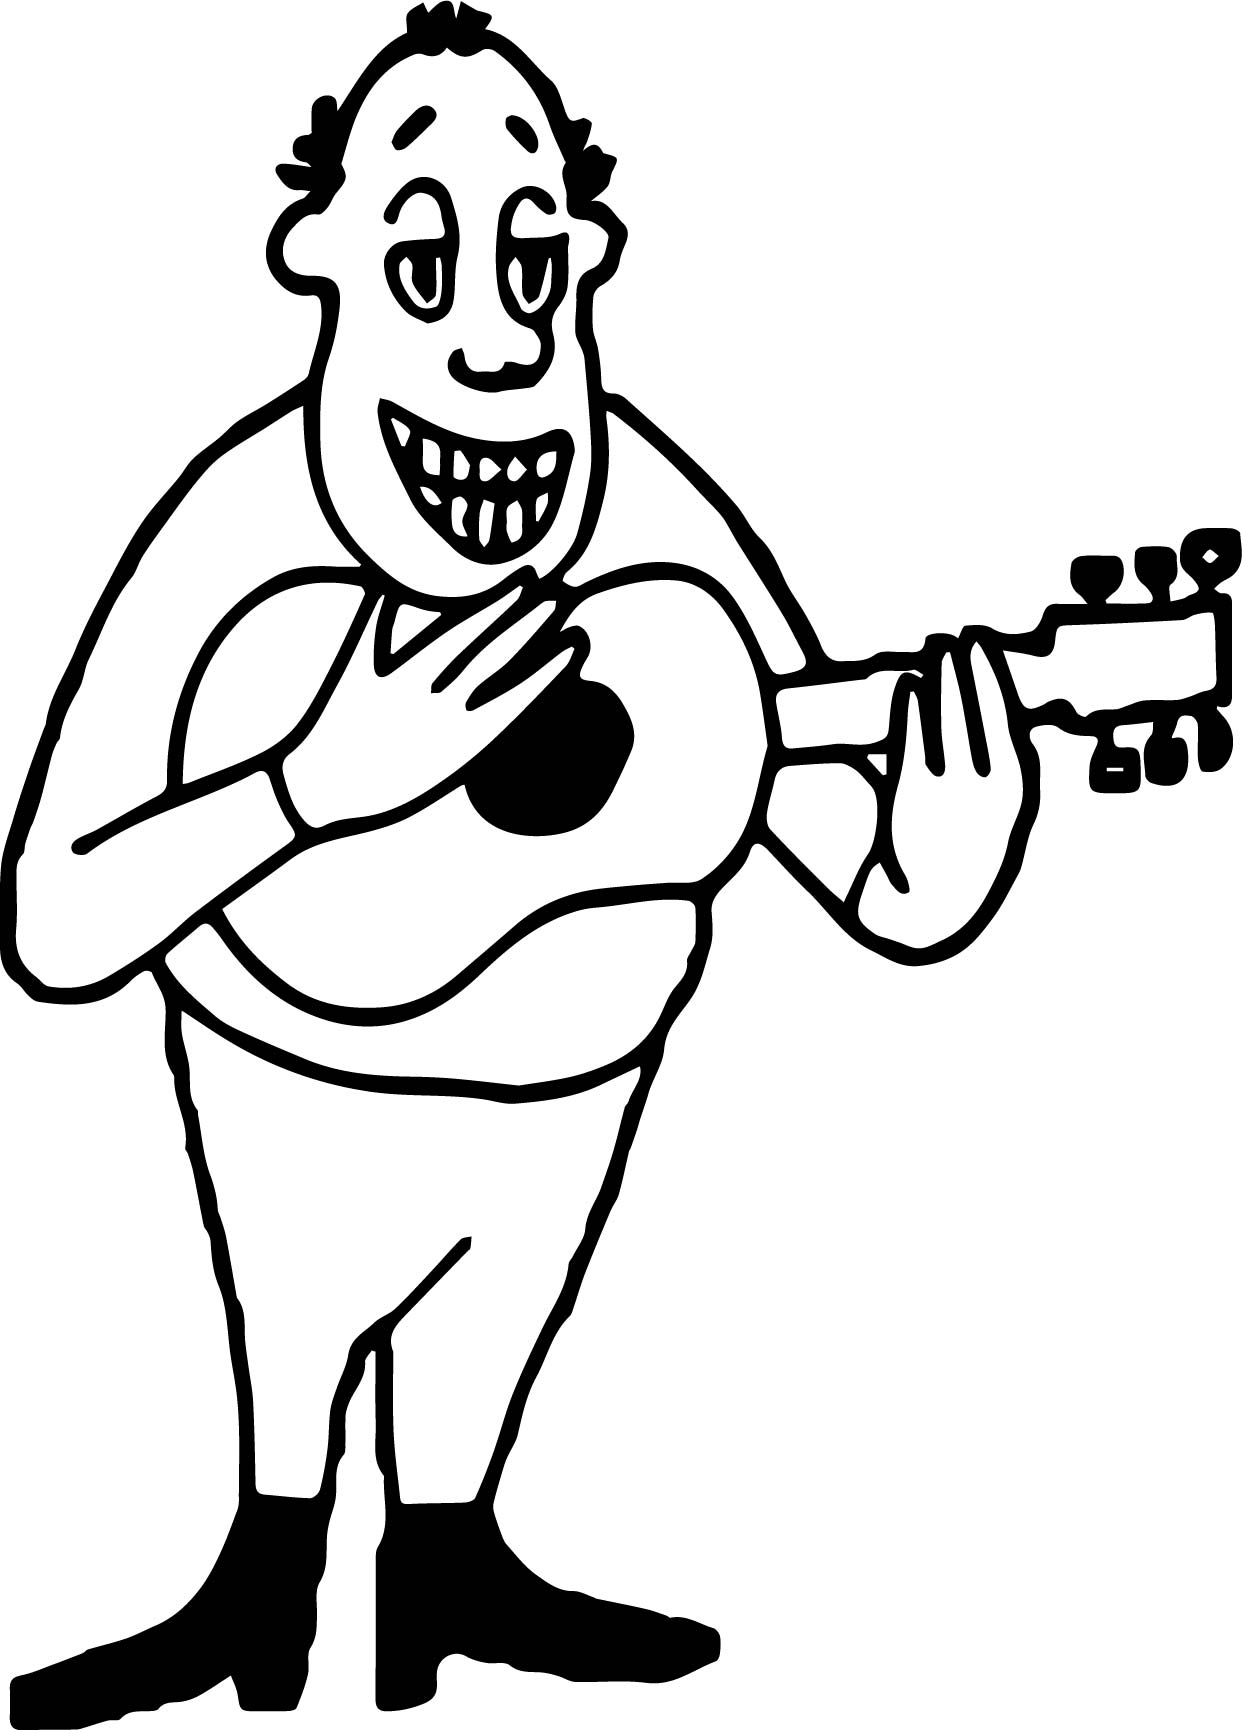 Guitar Player Strumming Guitar Man Coloring Page